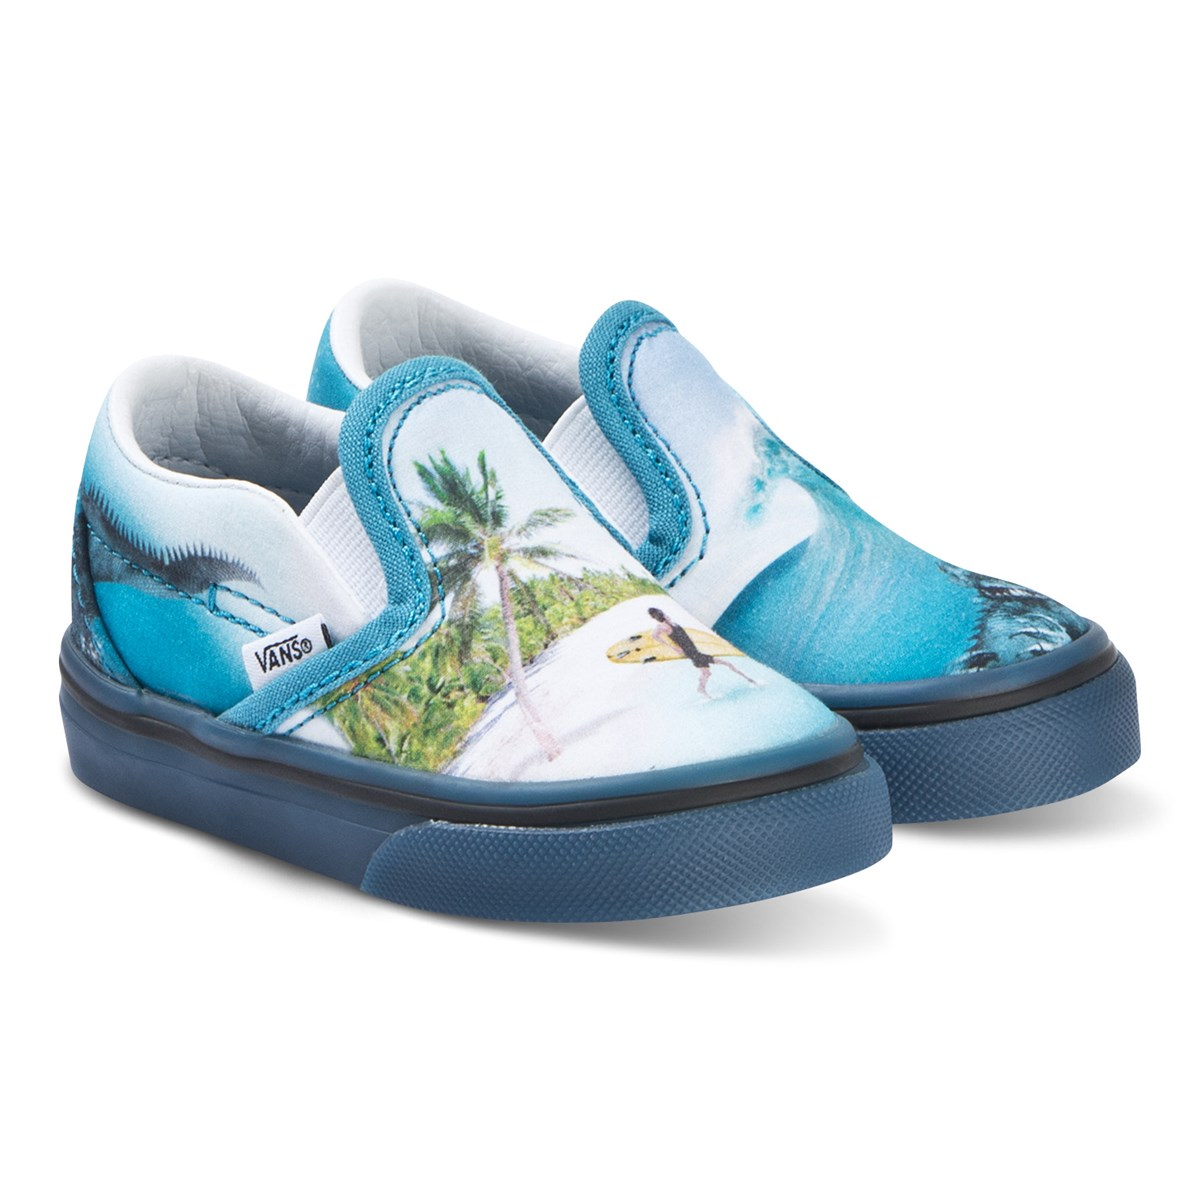 Newborn Shoes Vans Molo Blue Surf Monster Print Vans X Molo Slip On Shoes